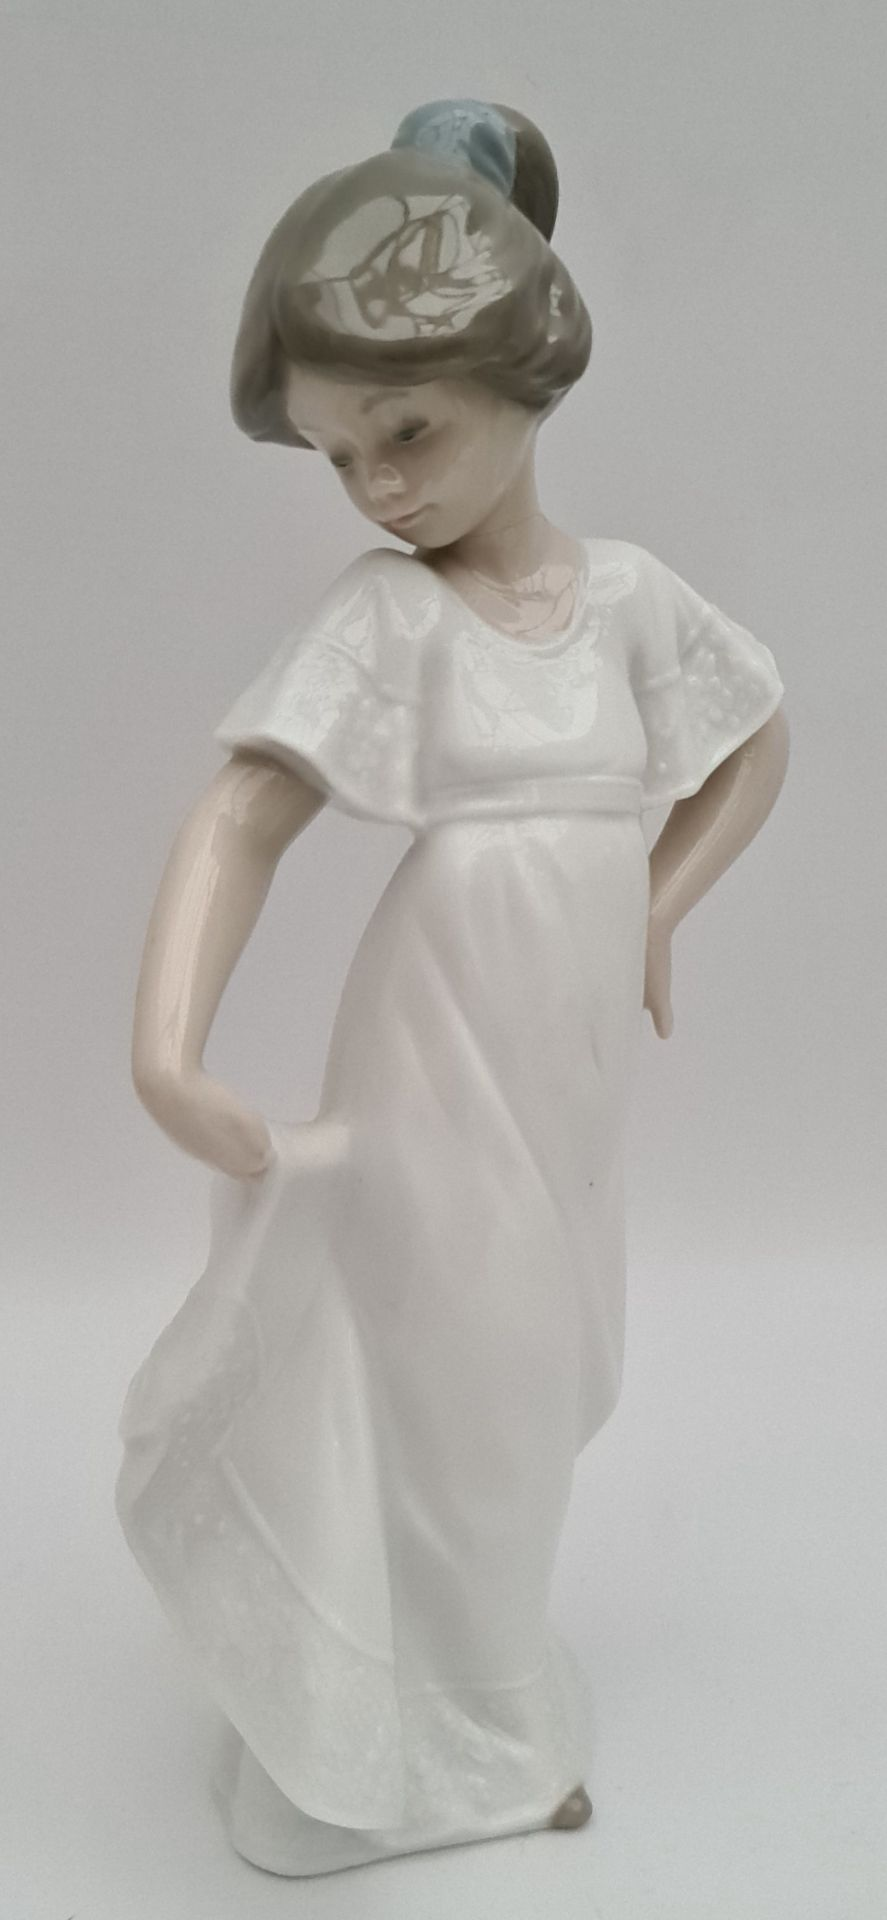 Vintage Lladro Figures 8 inches tall